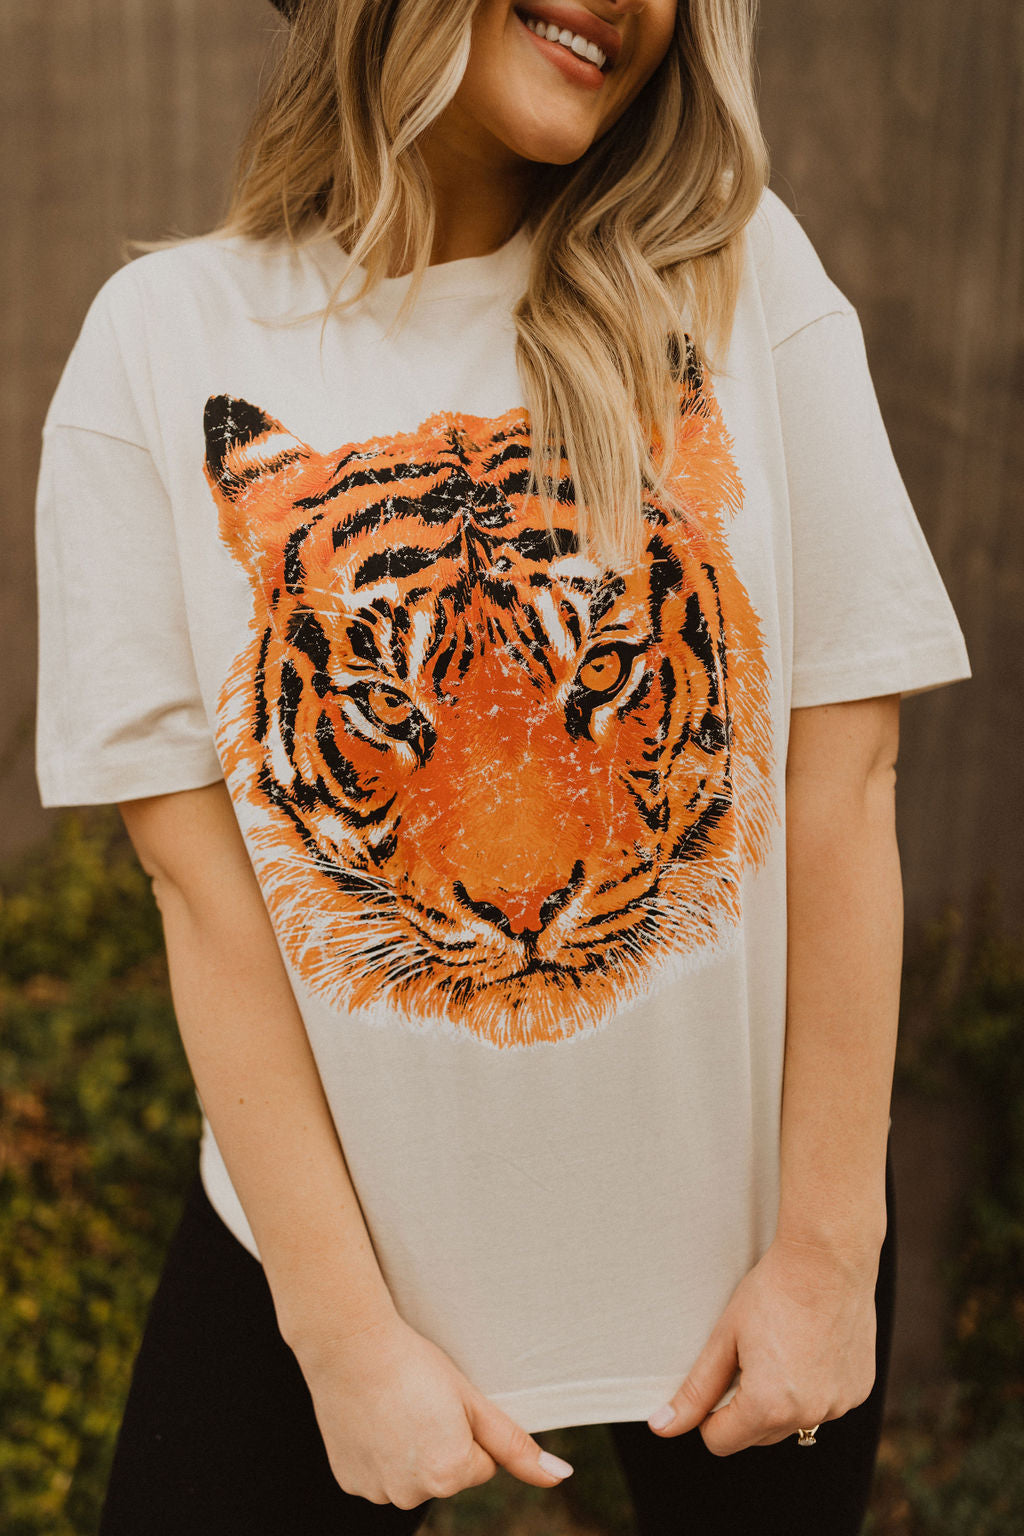 THE RAJA TIGER FACE GRAPHIC TEE IN CREAM